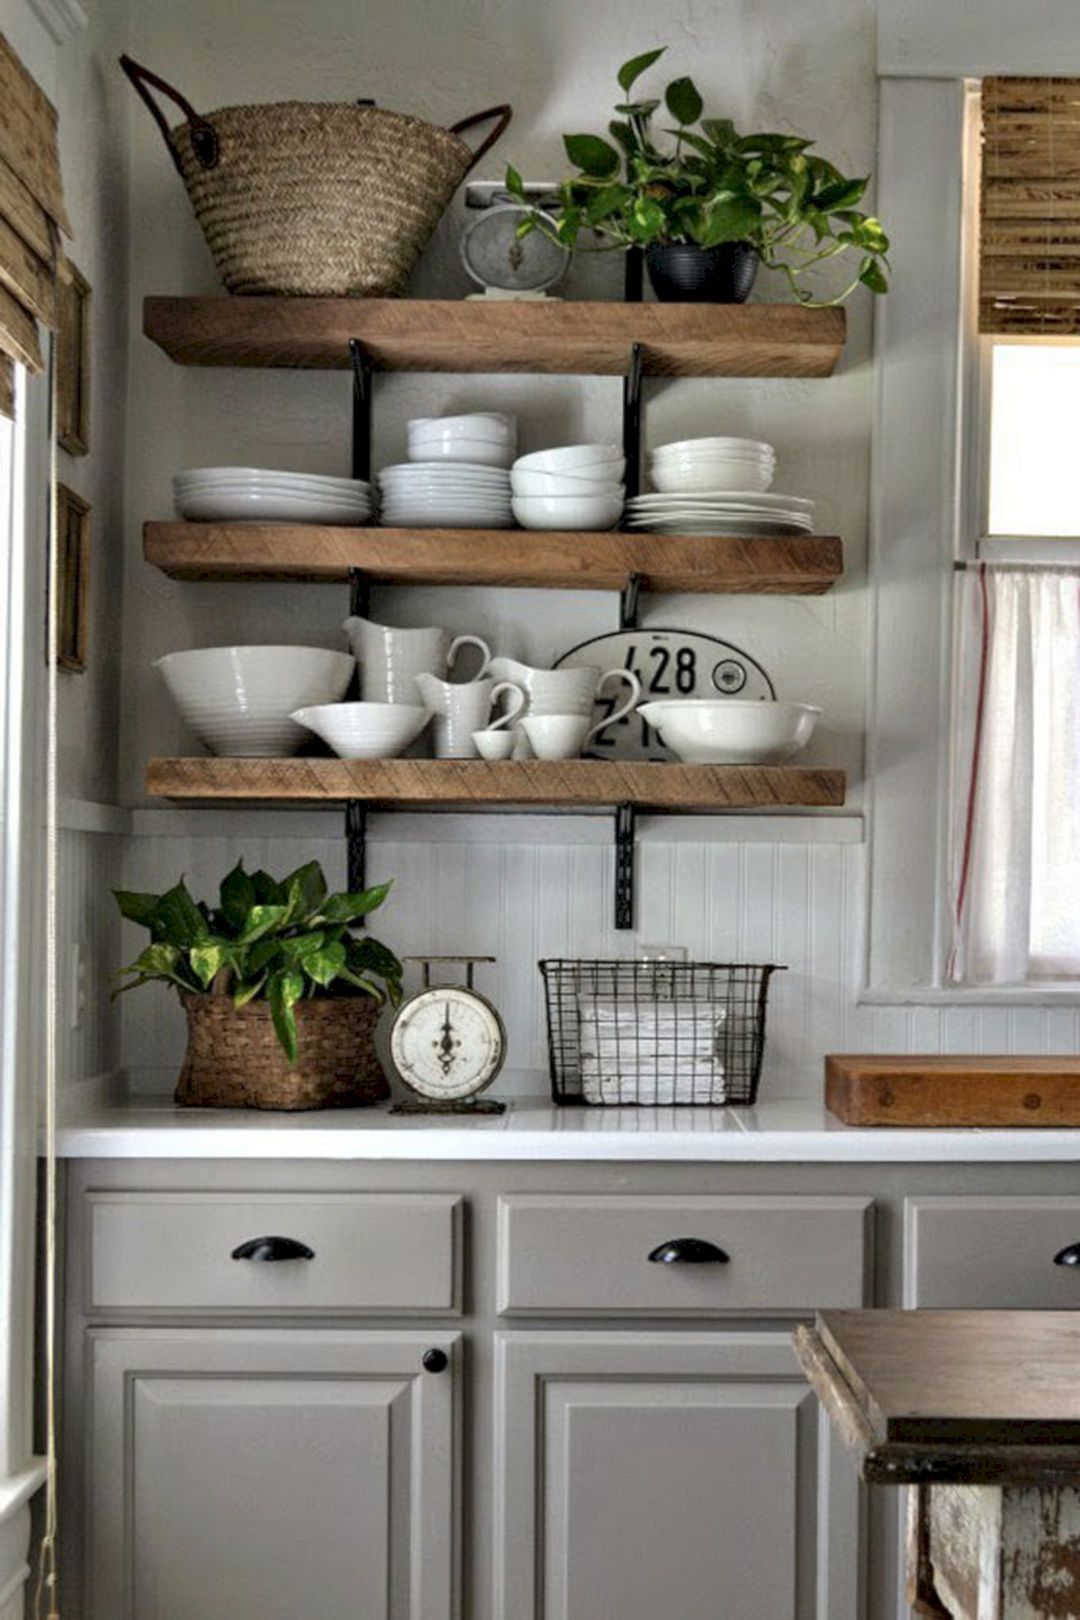 Rustic Kitchen Shelves Ideas In 2020 Rustic Kitchen Farmhouse Kitchen Tables Kitchen Shelves